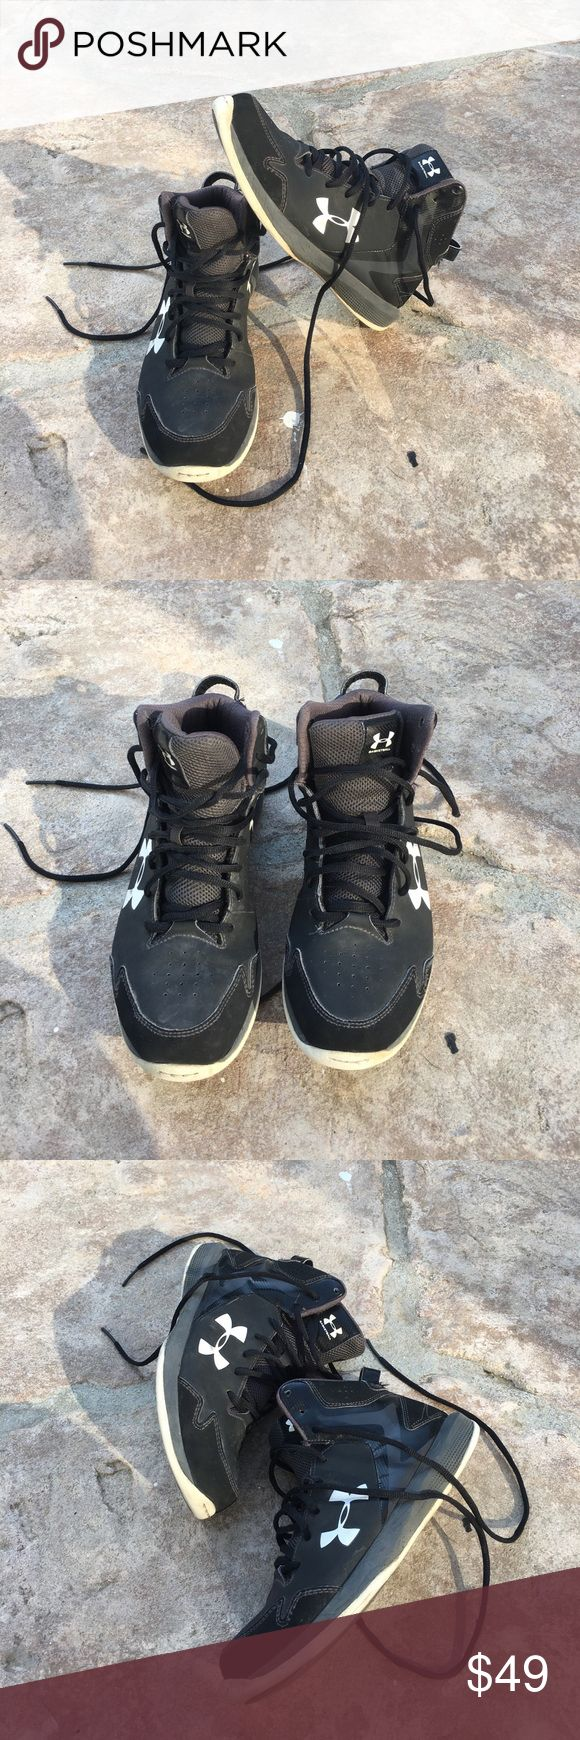 Under Armour Men's High Top Sneakers Excellent condition Under Armour Shoes Sneakers